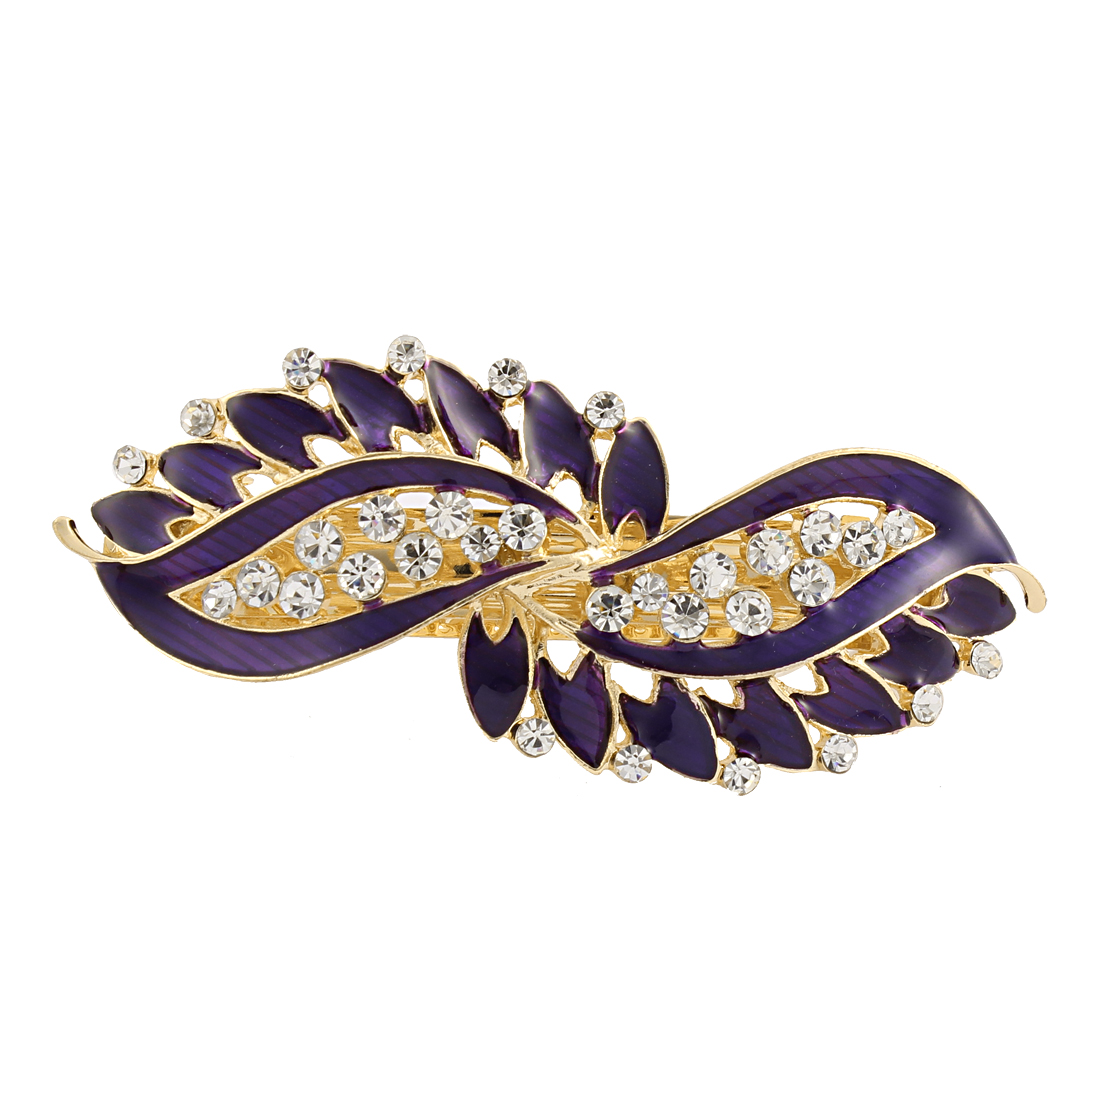 Lady Rhinestone Inlaid Leaf Style Spring Loaded Hair Barrette Clip Purple